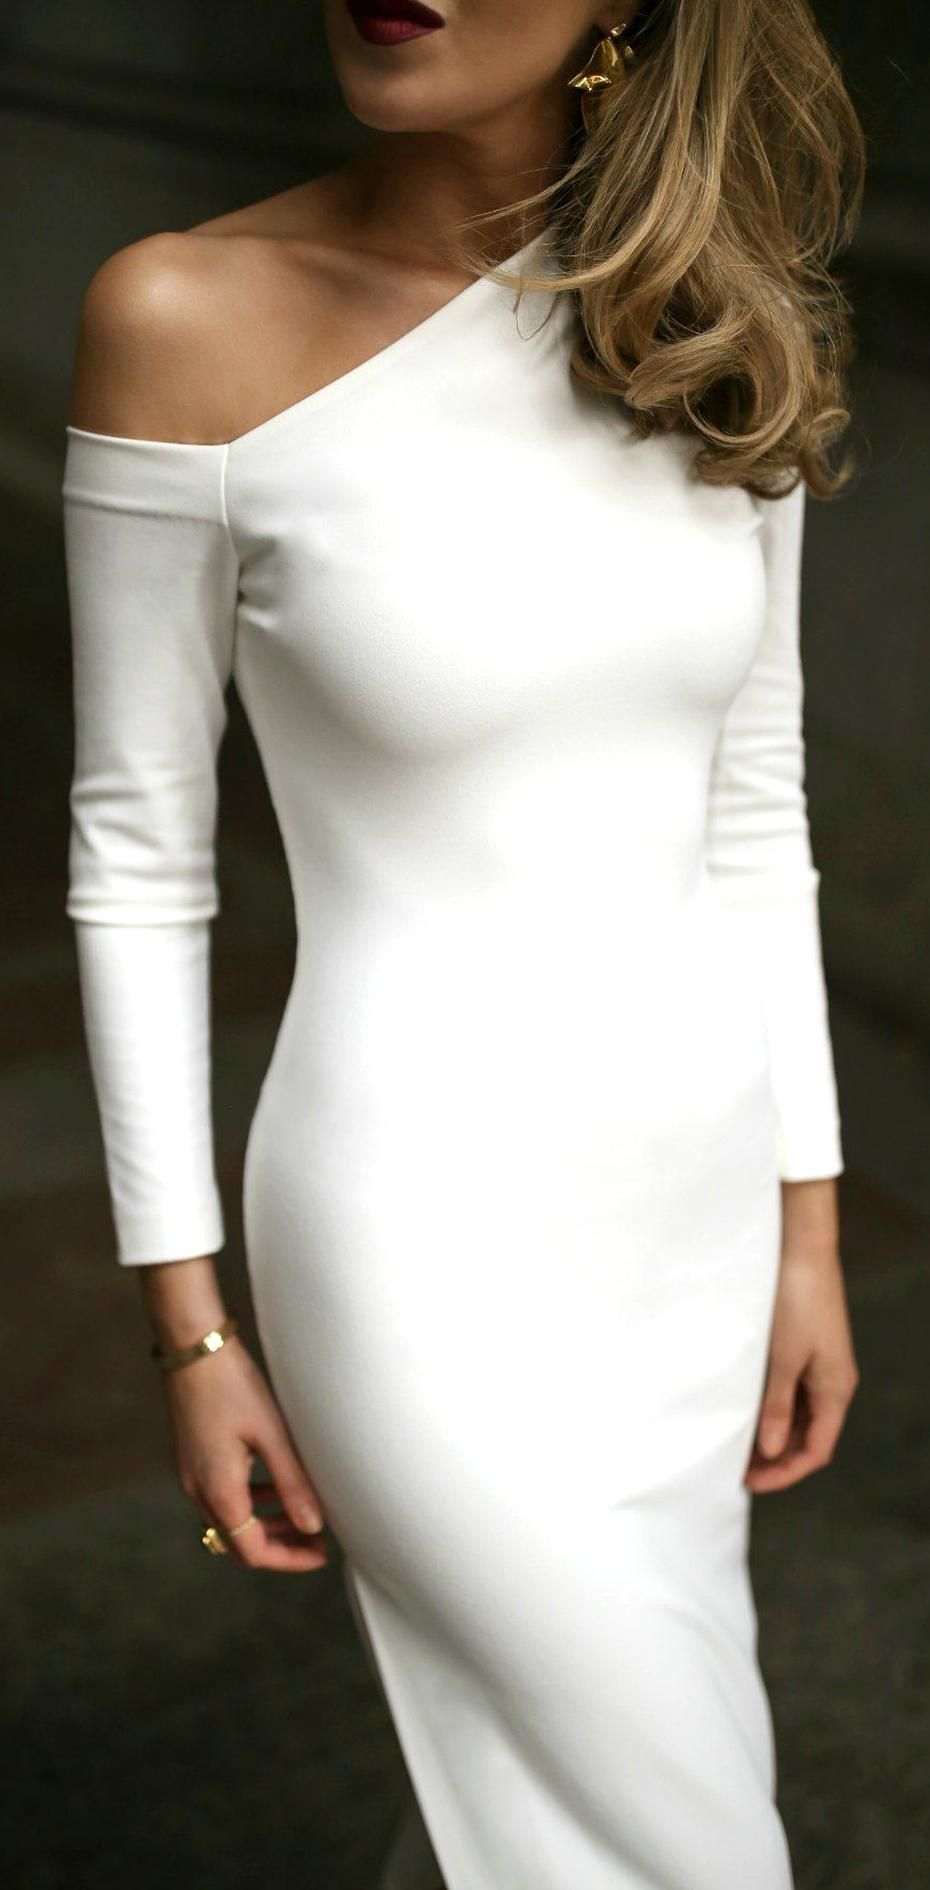 30 Dresses In 30 Days Brides Rehearsal Dinner White Long Sleeve Cold Shoulder Crepe Maxi Dres In 2020 Rehersal Dinner Dresses Rehearsal Dinner Outfits Dinner Outfits